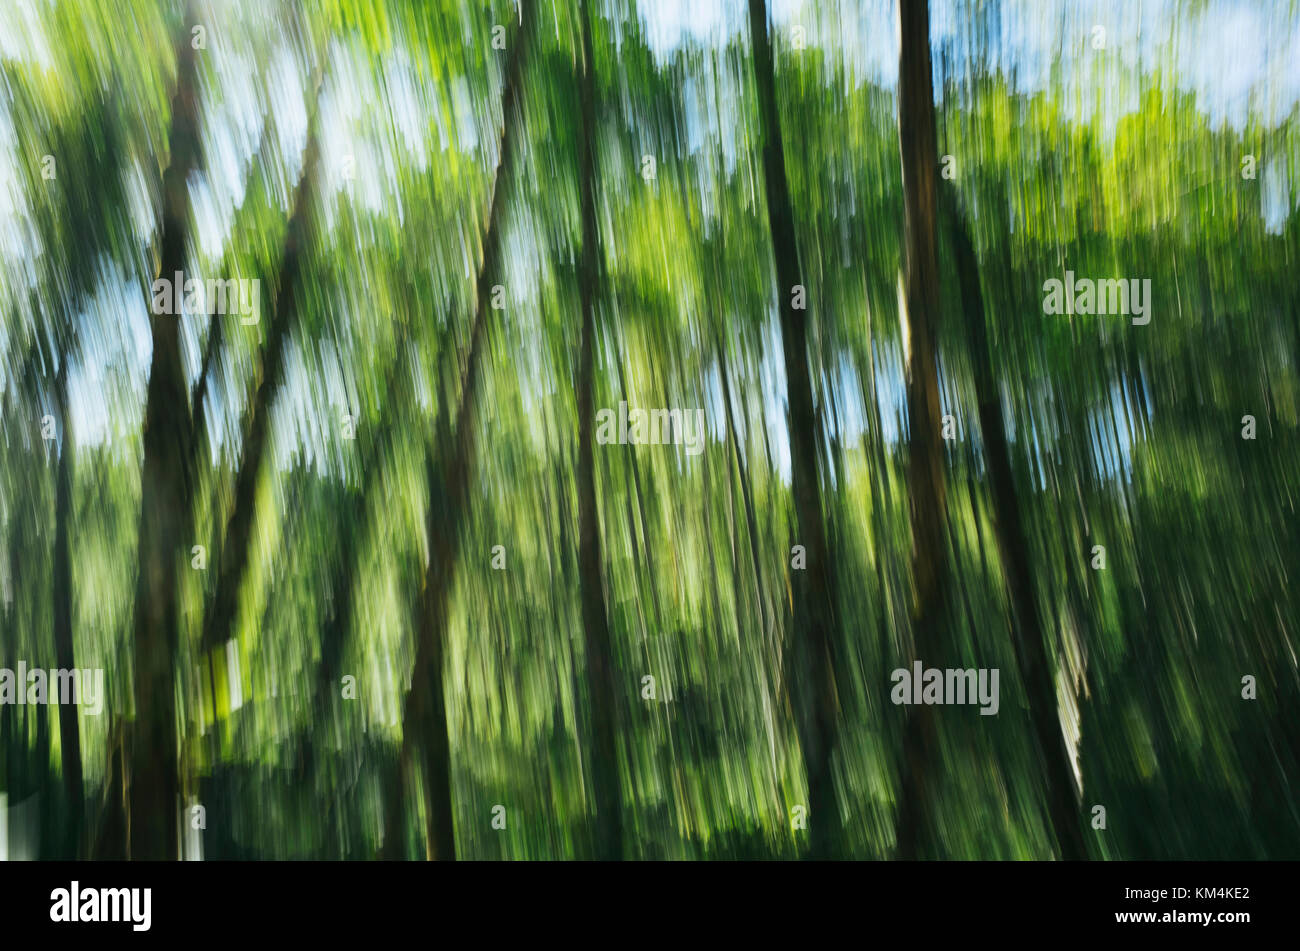 Blurred motion, tall alder trees with green leafy canopy shaking and swaying in the wind. - Stock Image